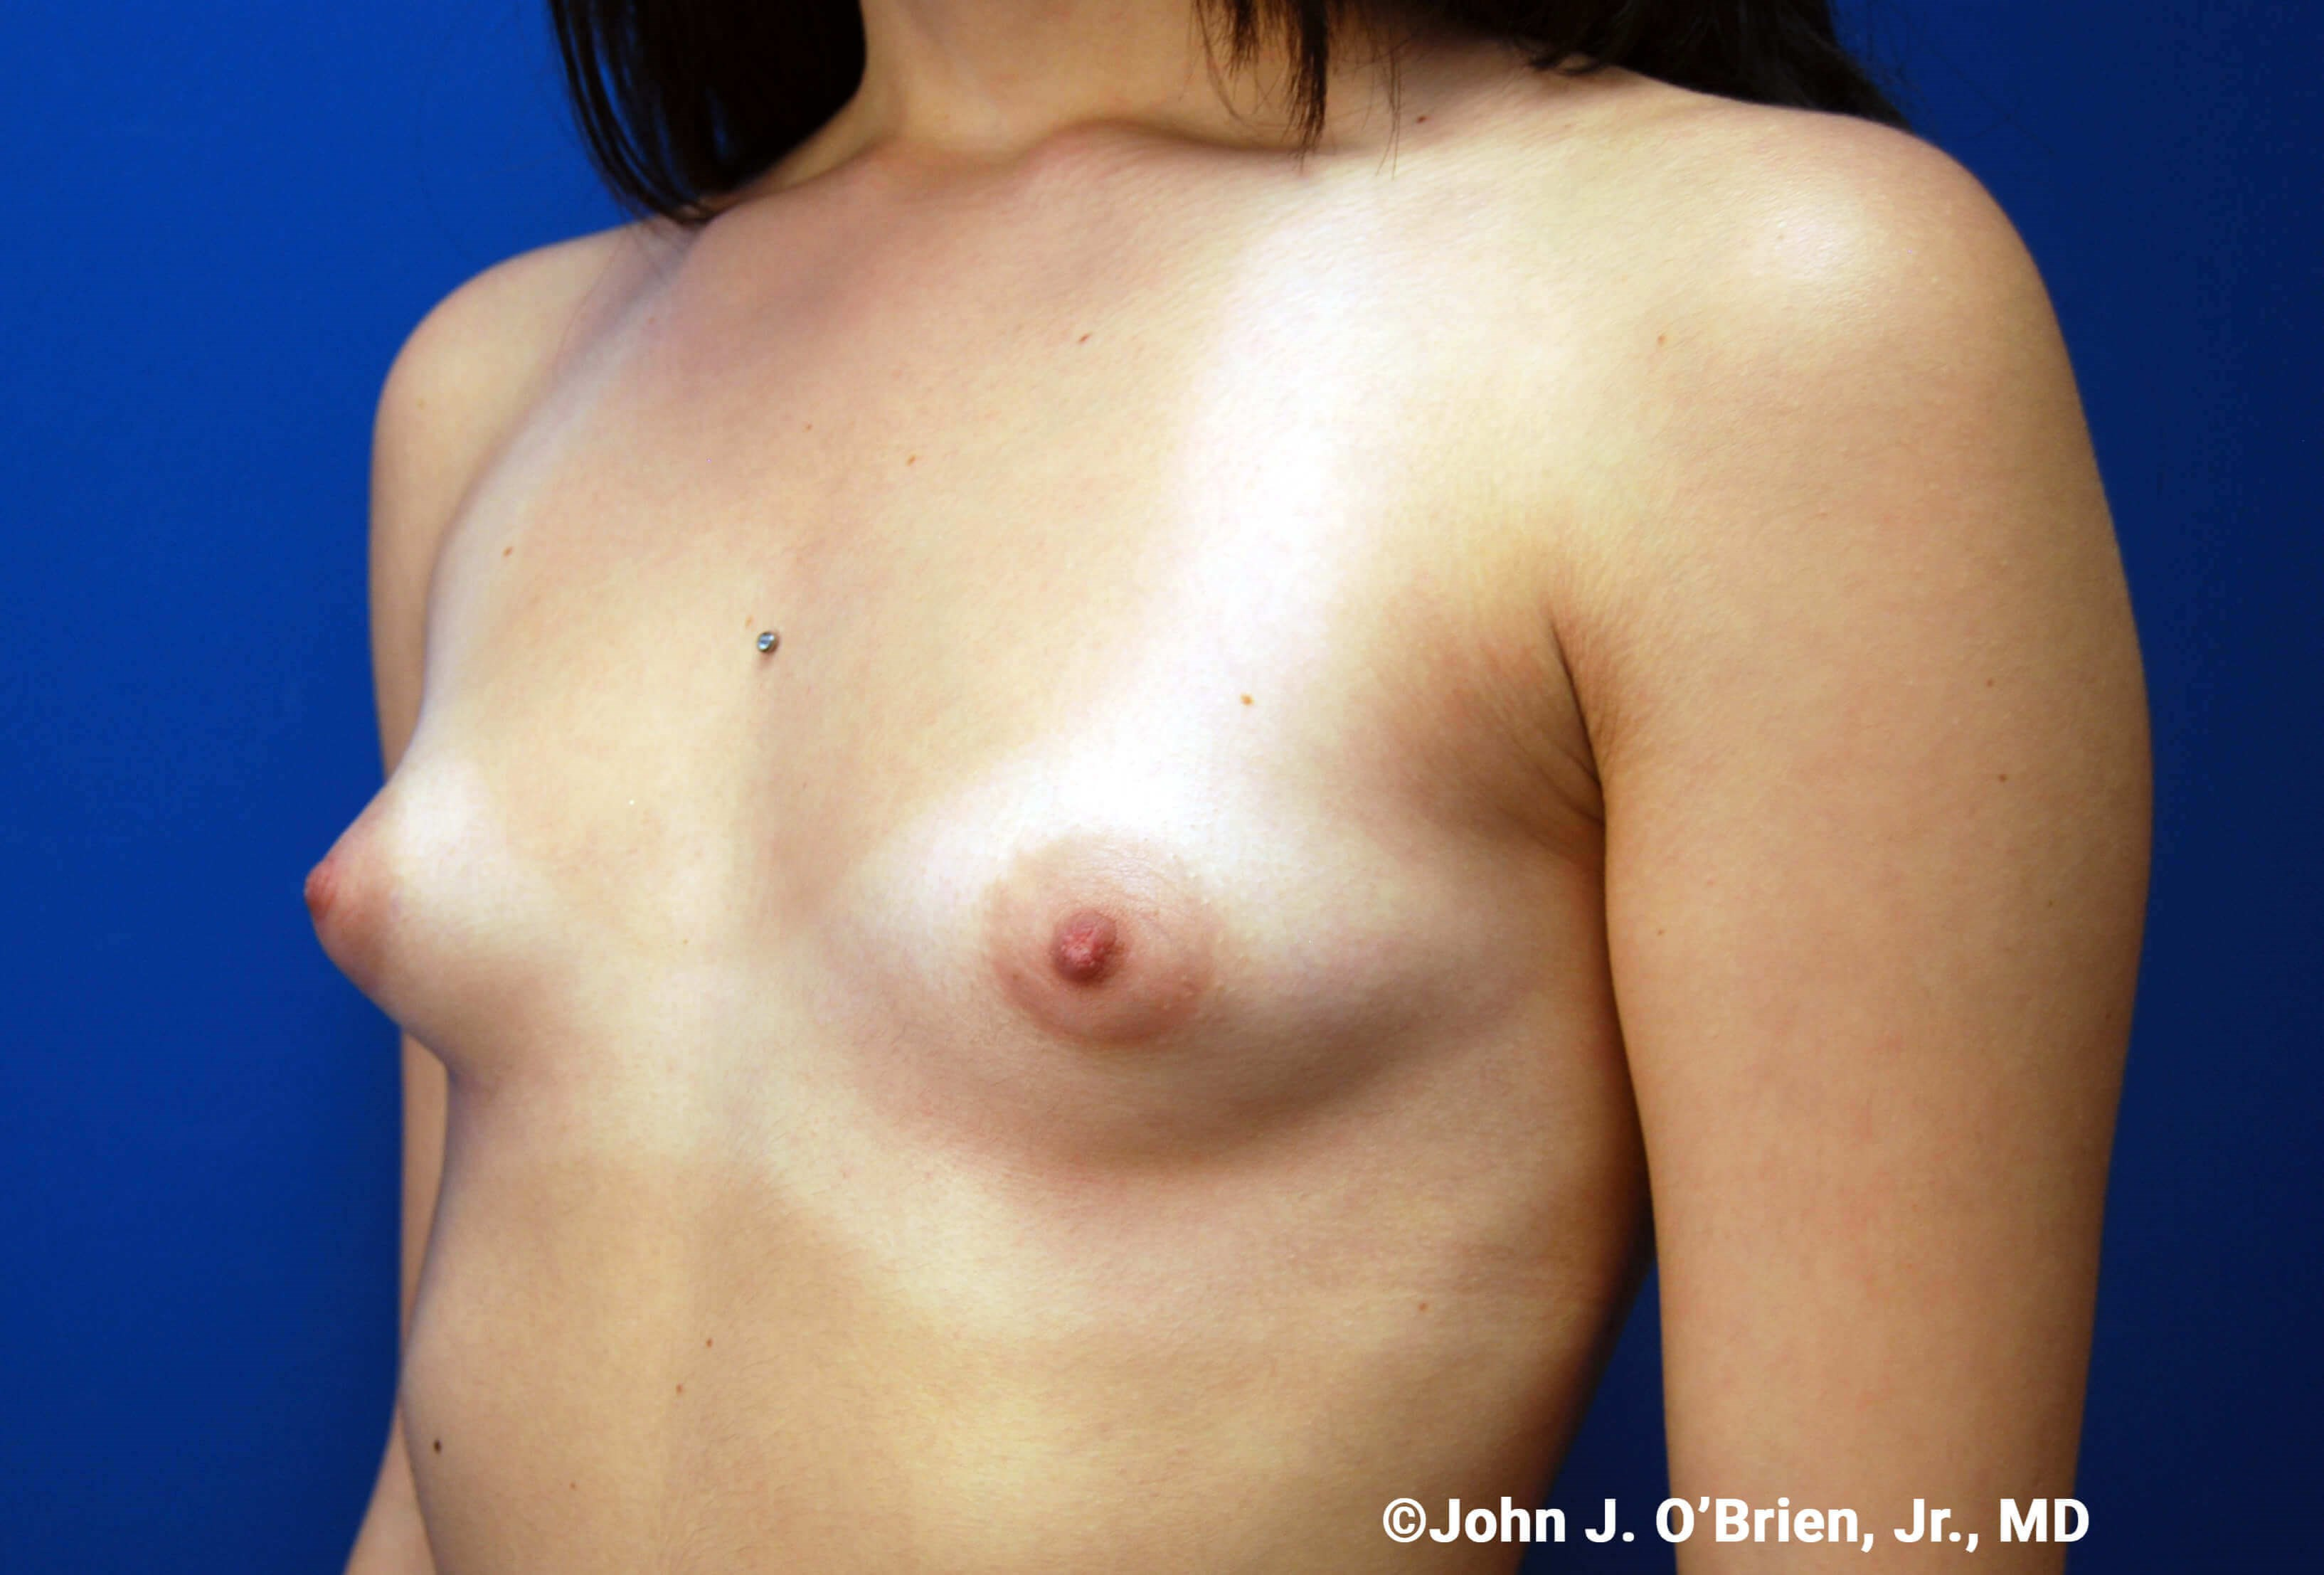 Left Side View Before Implants